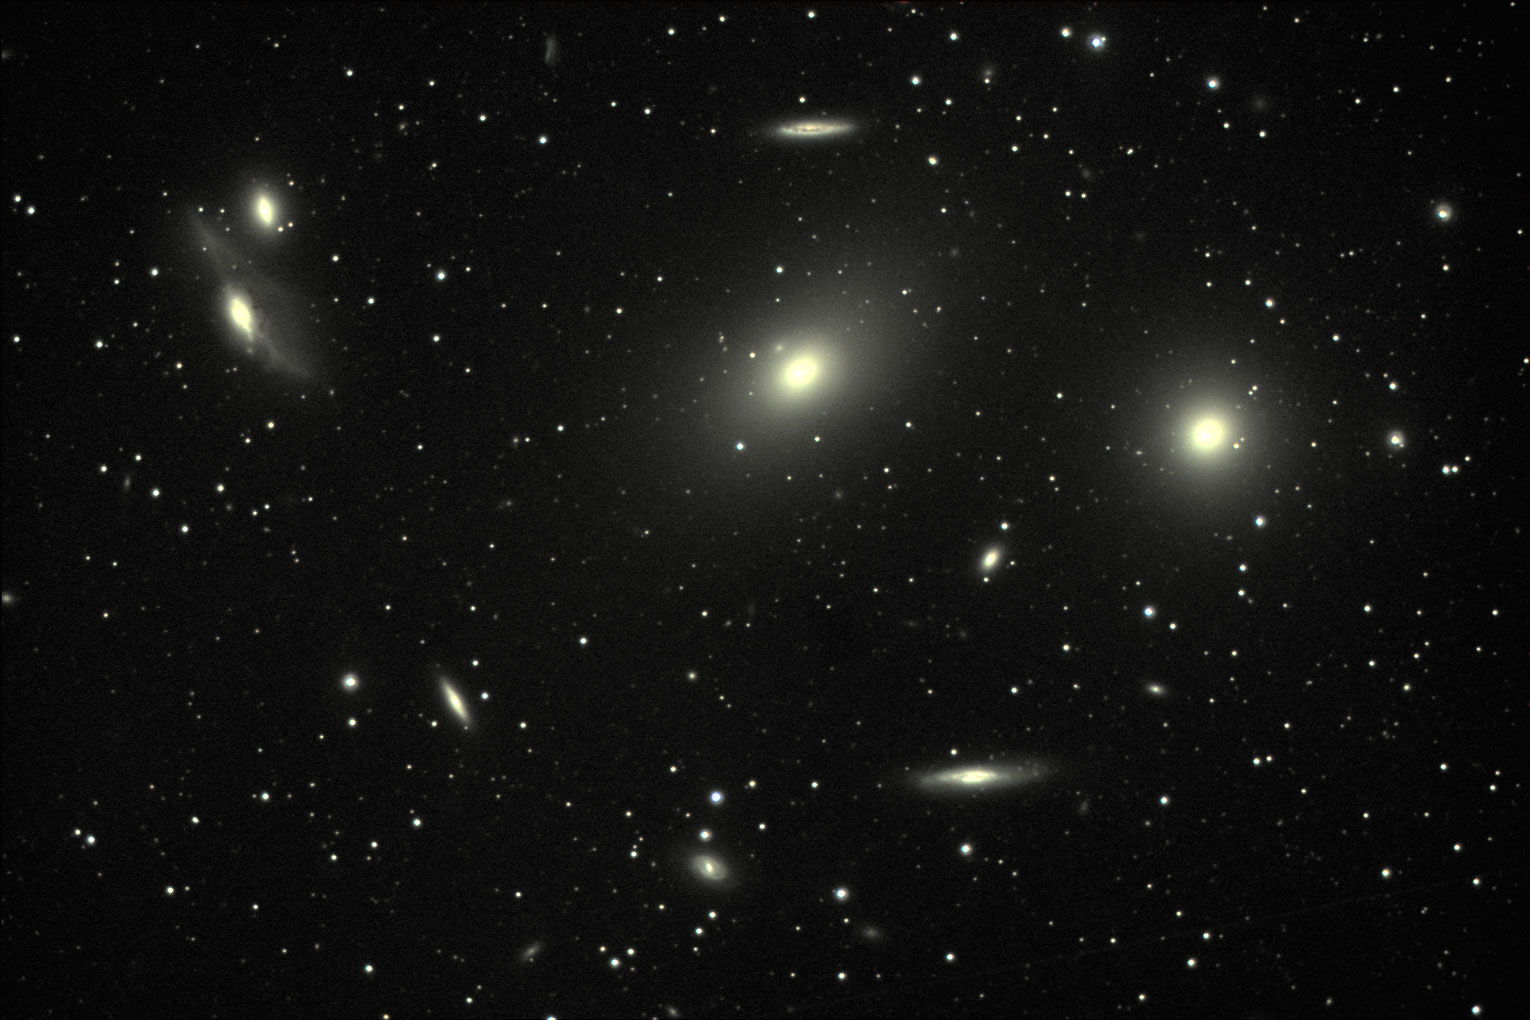 Image name virgo cluster of galaxys m84 m86 source http www